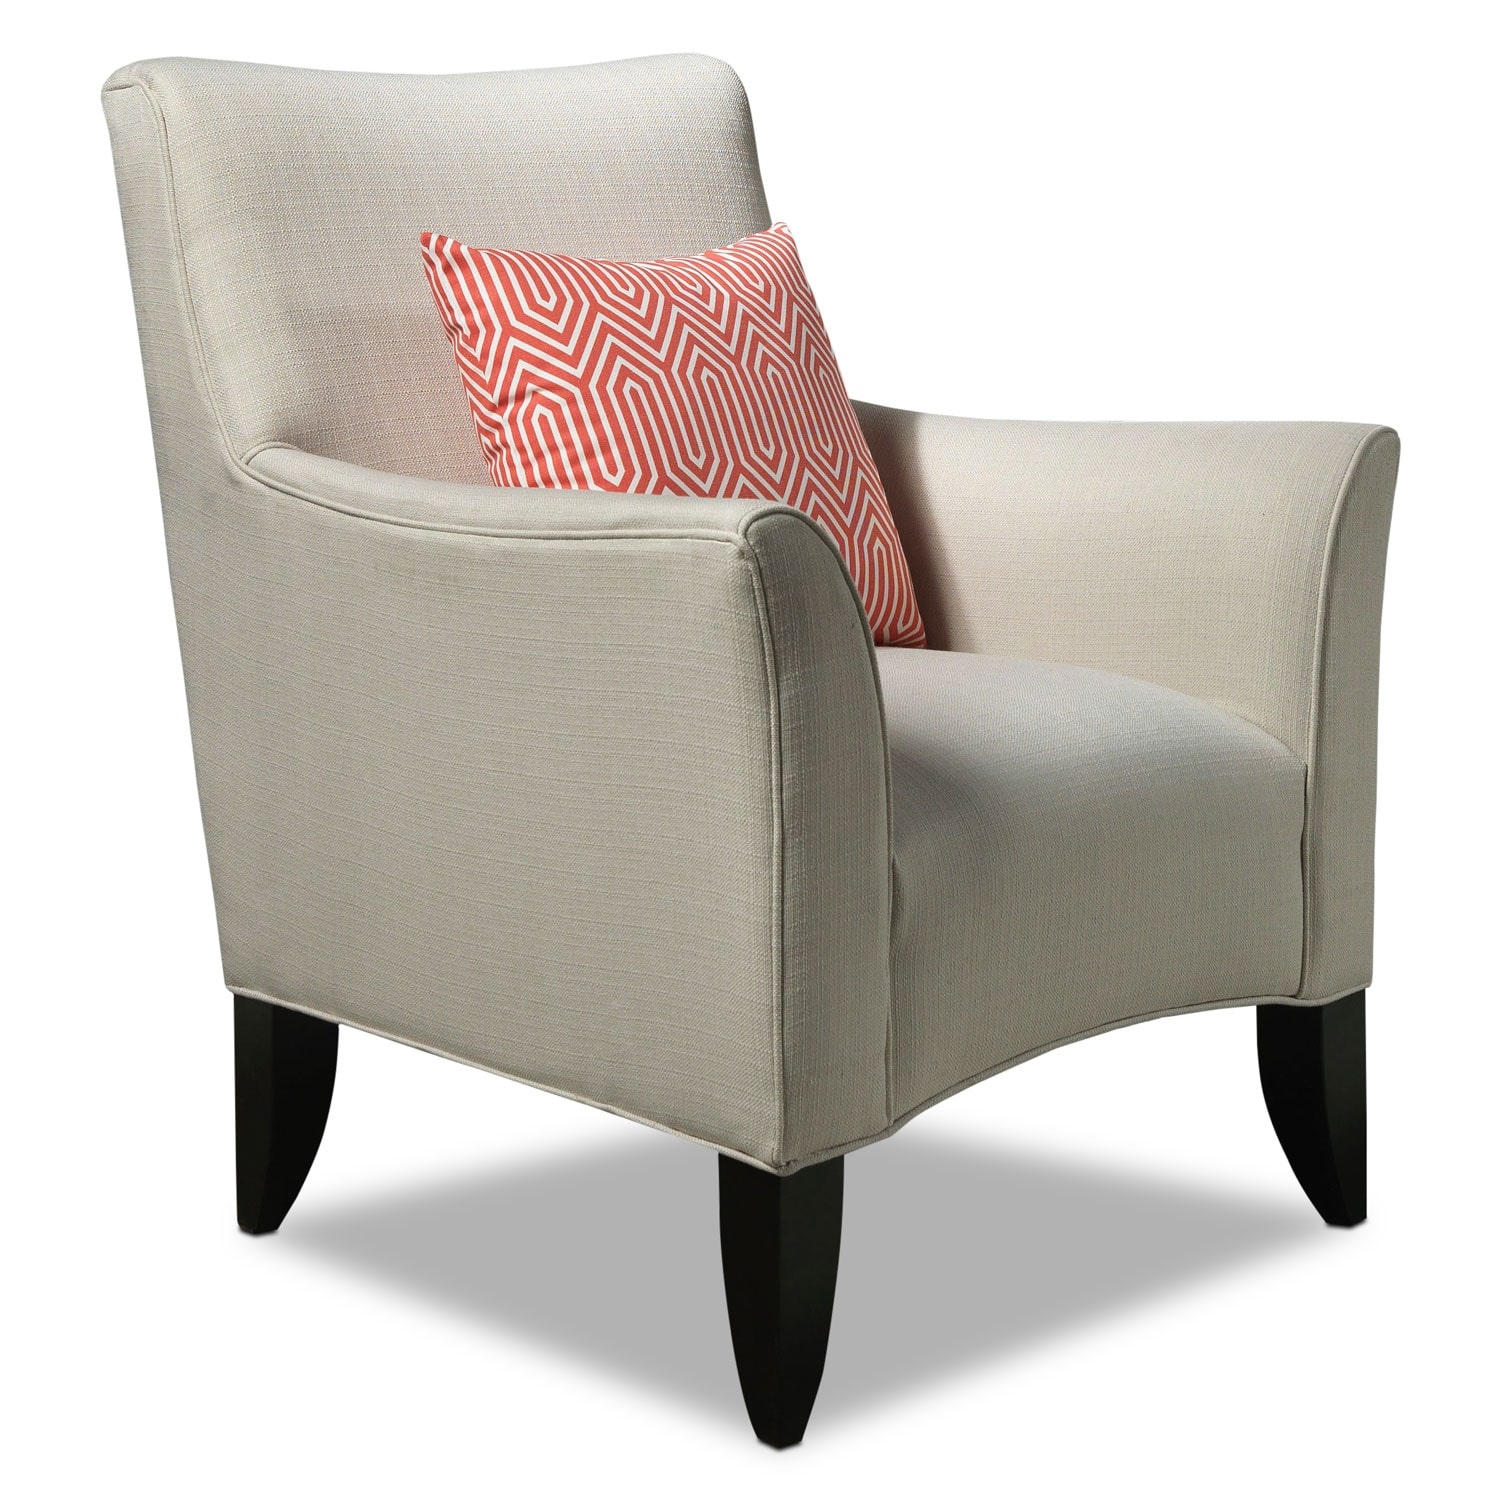 Klein Accent Chair - Ivory